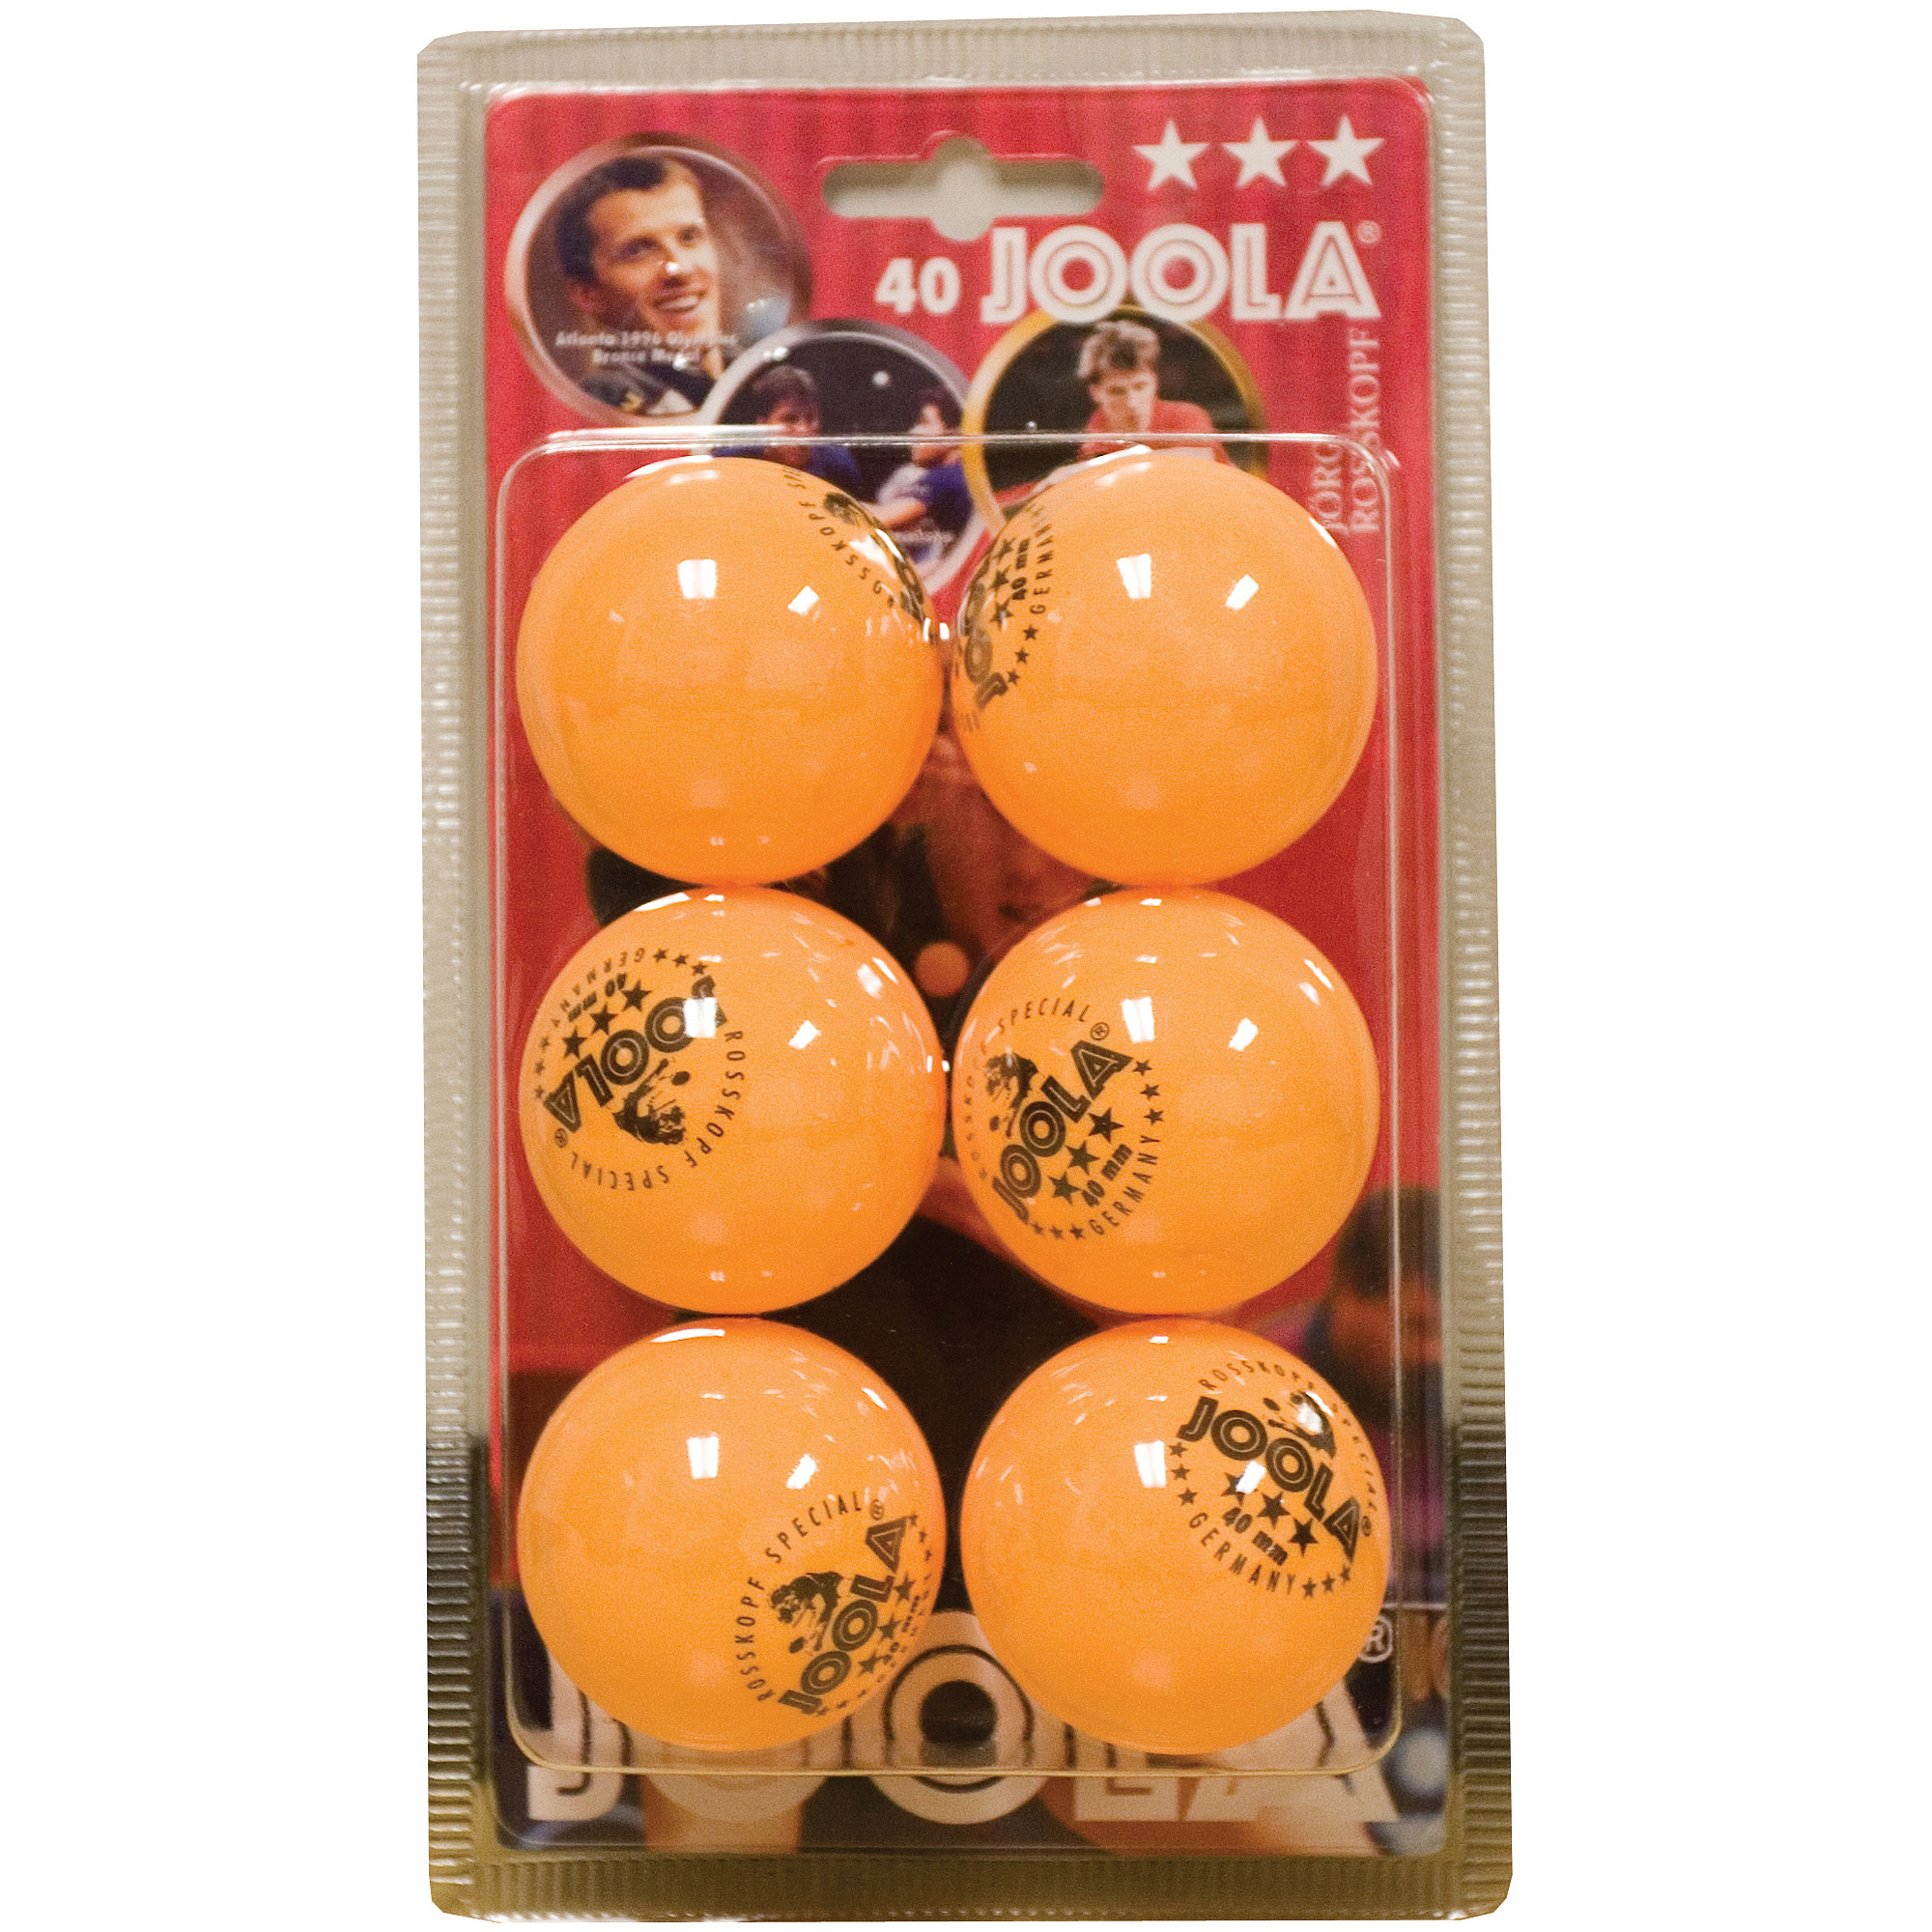 JOOLA Rossi 3-Star Table Tennis Balls (6 Count) - Orange